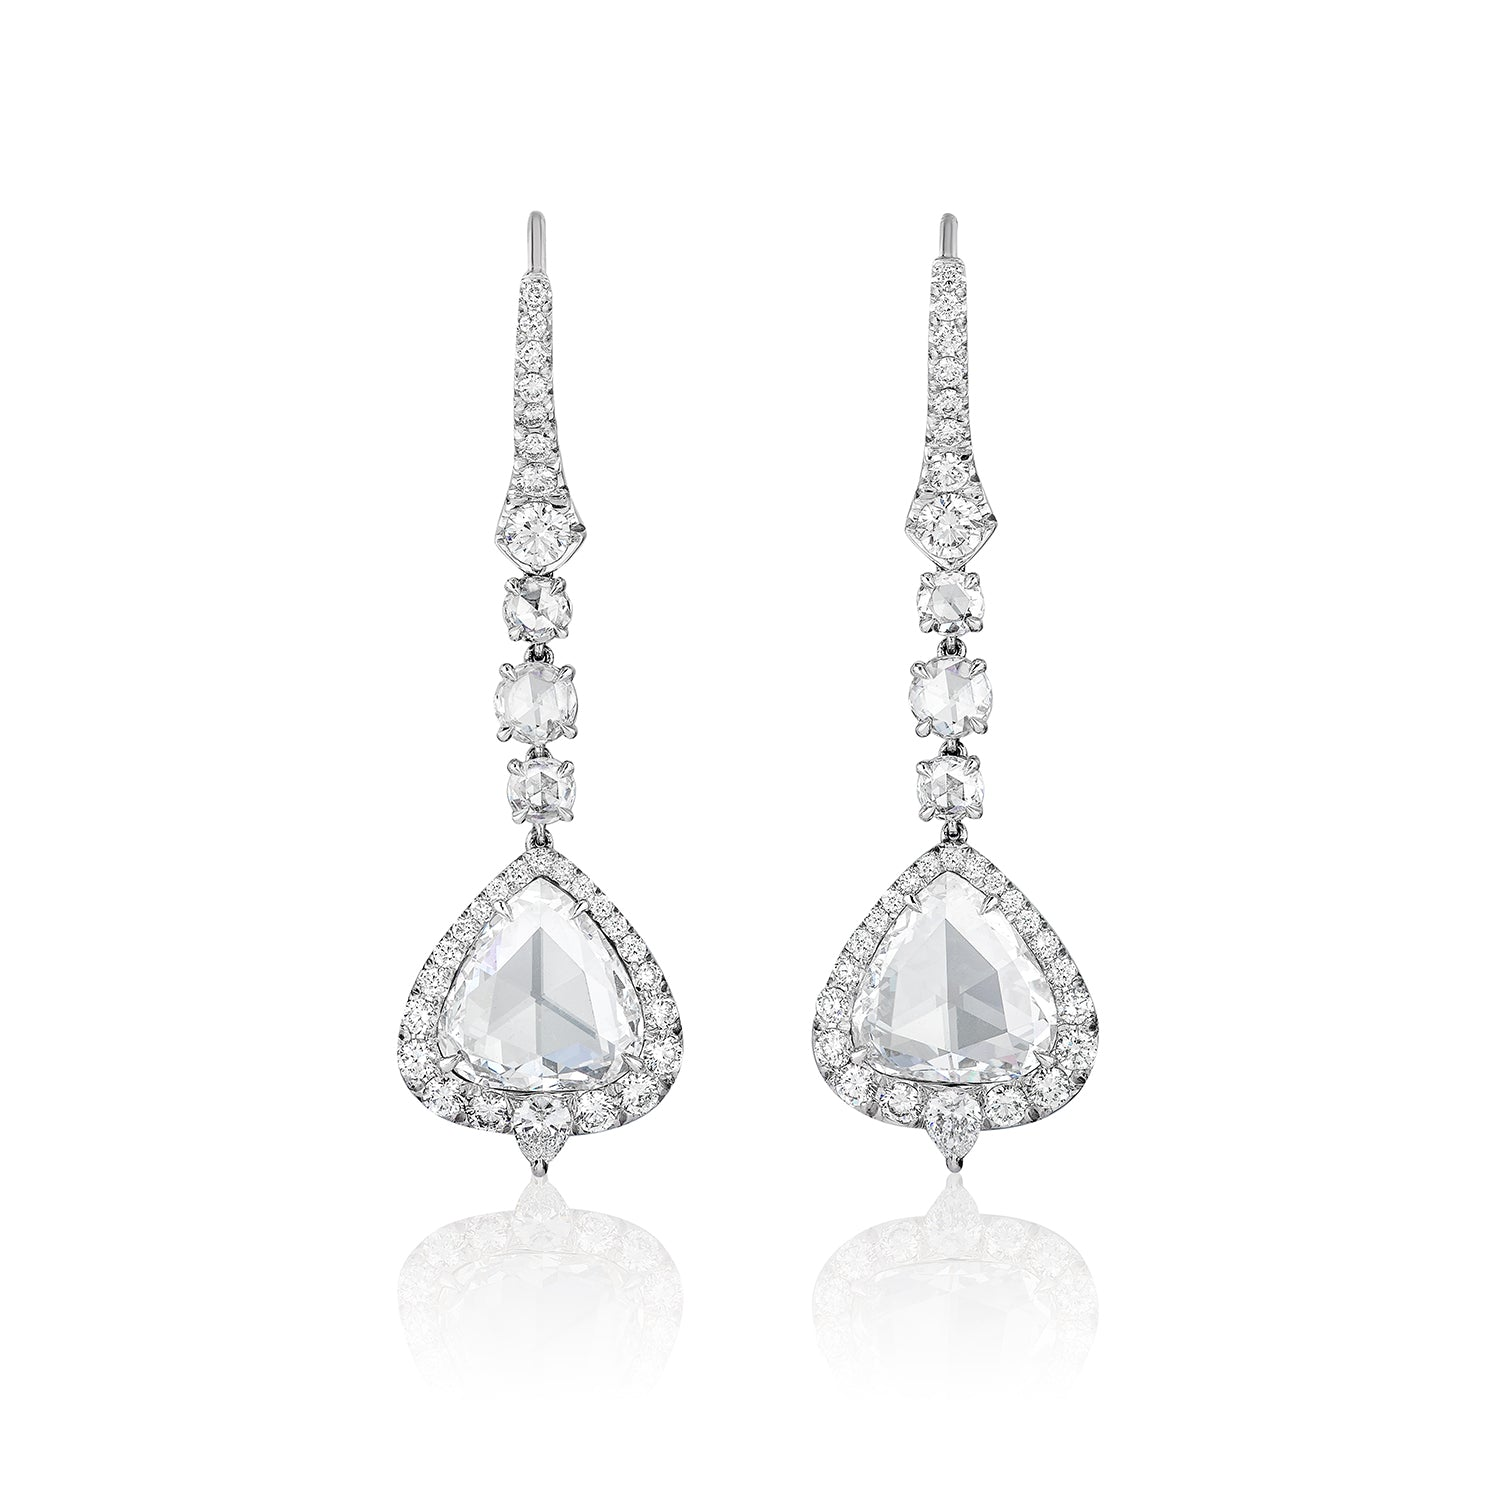 Rose-Cut Diamond & Diamond Earrings